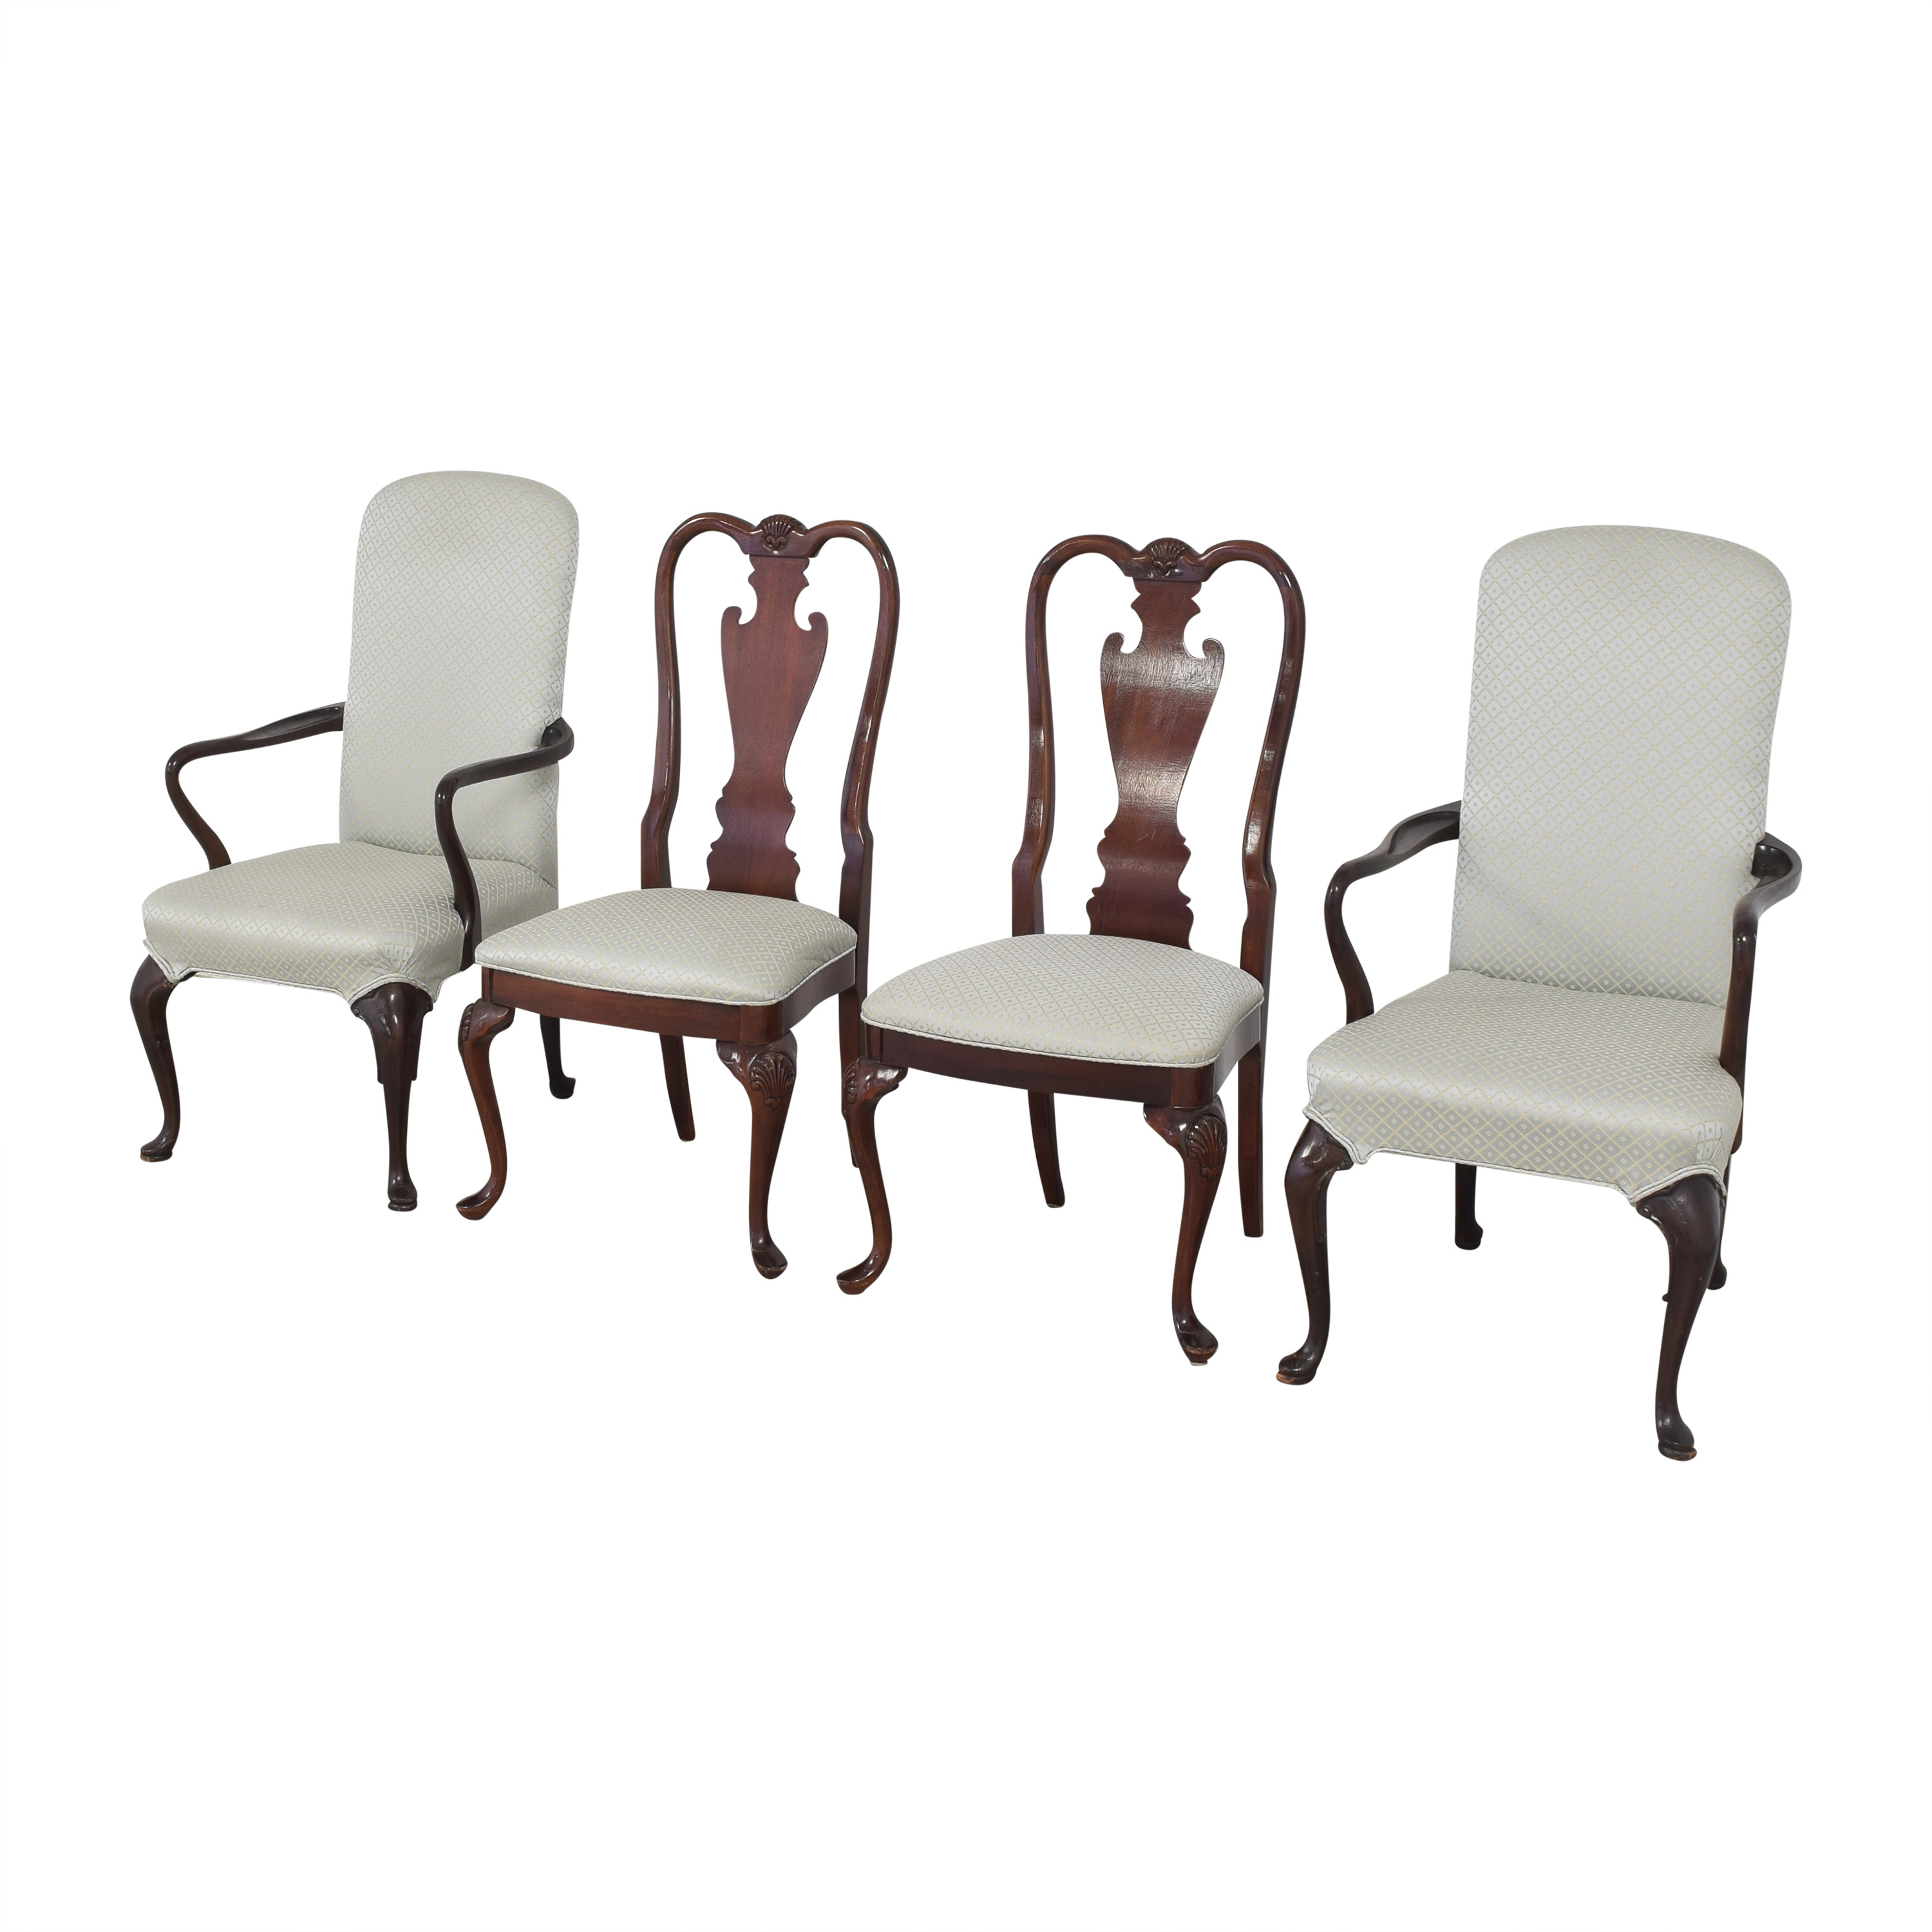 Stickley Furniture Stickley Furniture Queen Anne-Style Dining Chairs ct